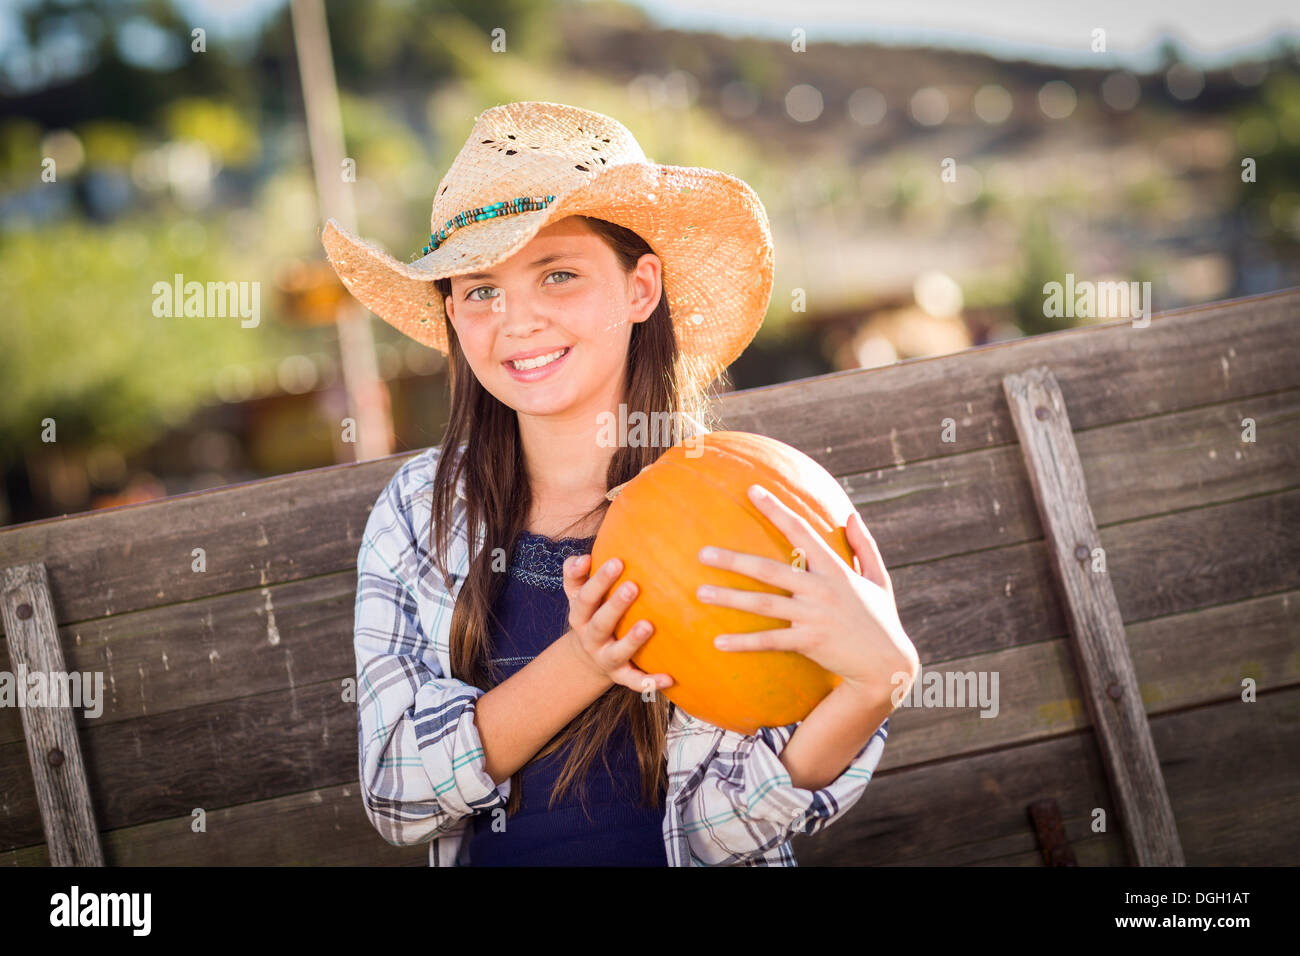 Preteen Girl Wearing Cowboy Hat Portrait at the Pumpkin Patch in a Rustic Setting. - Stock Image